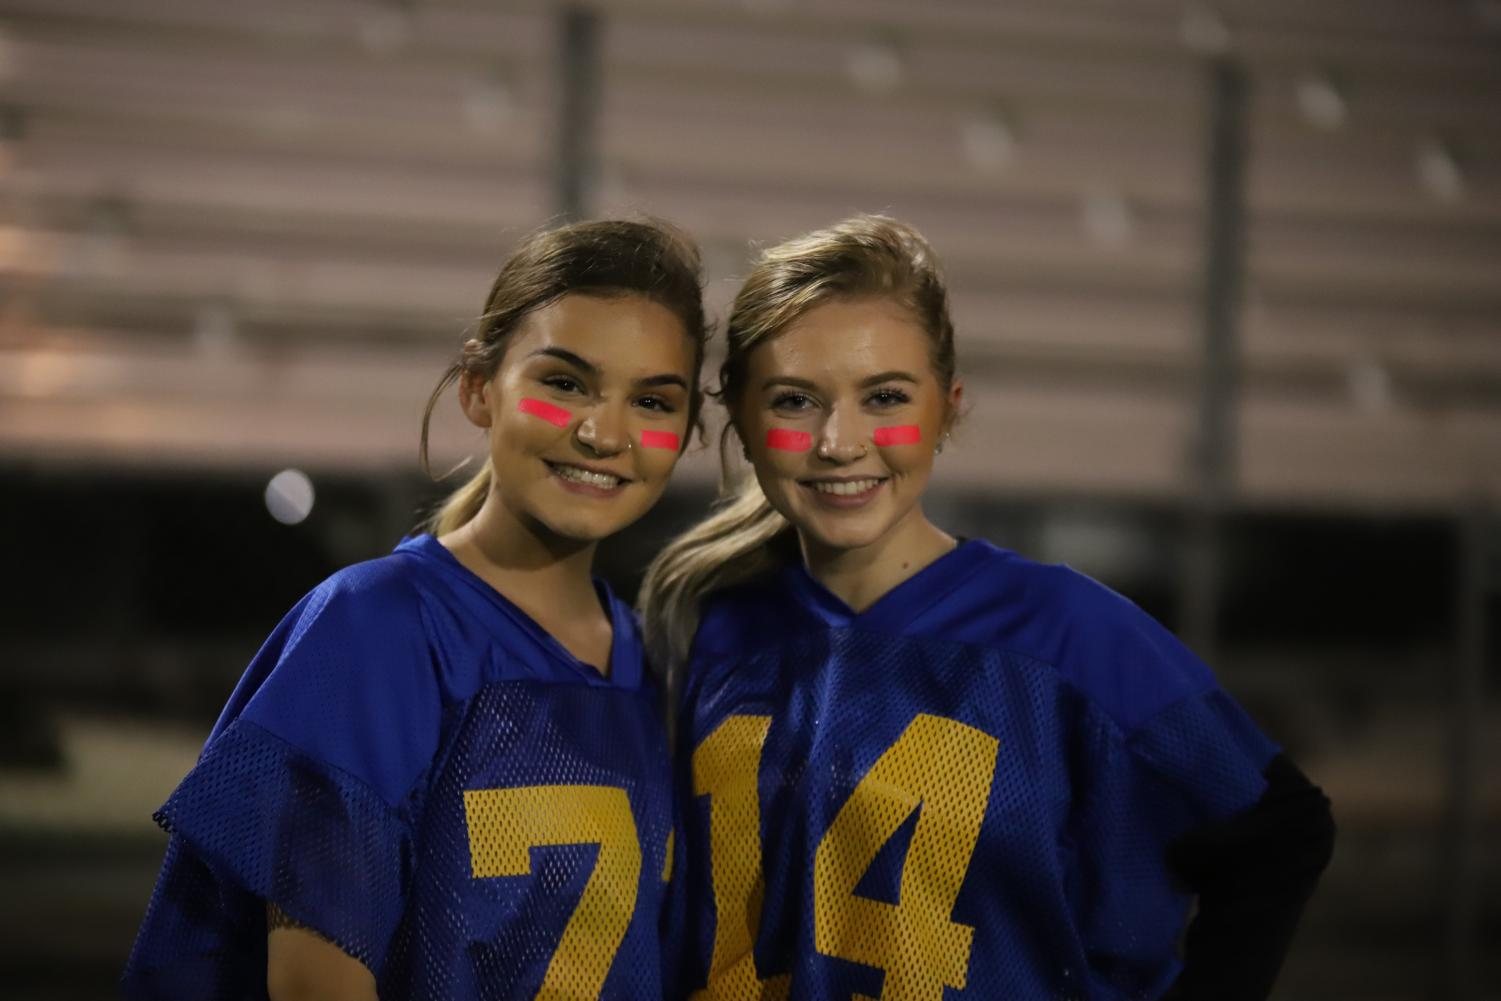 Blue team members Grace Armstrong and Kloie Malone looking ready to play. Their team ended up winning the game.